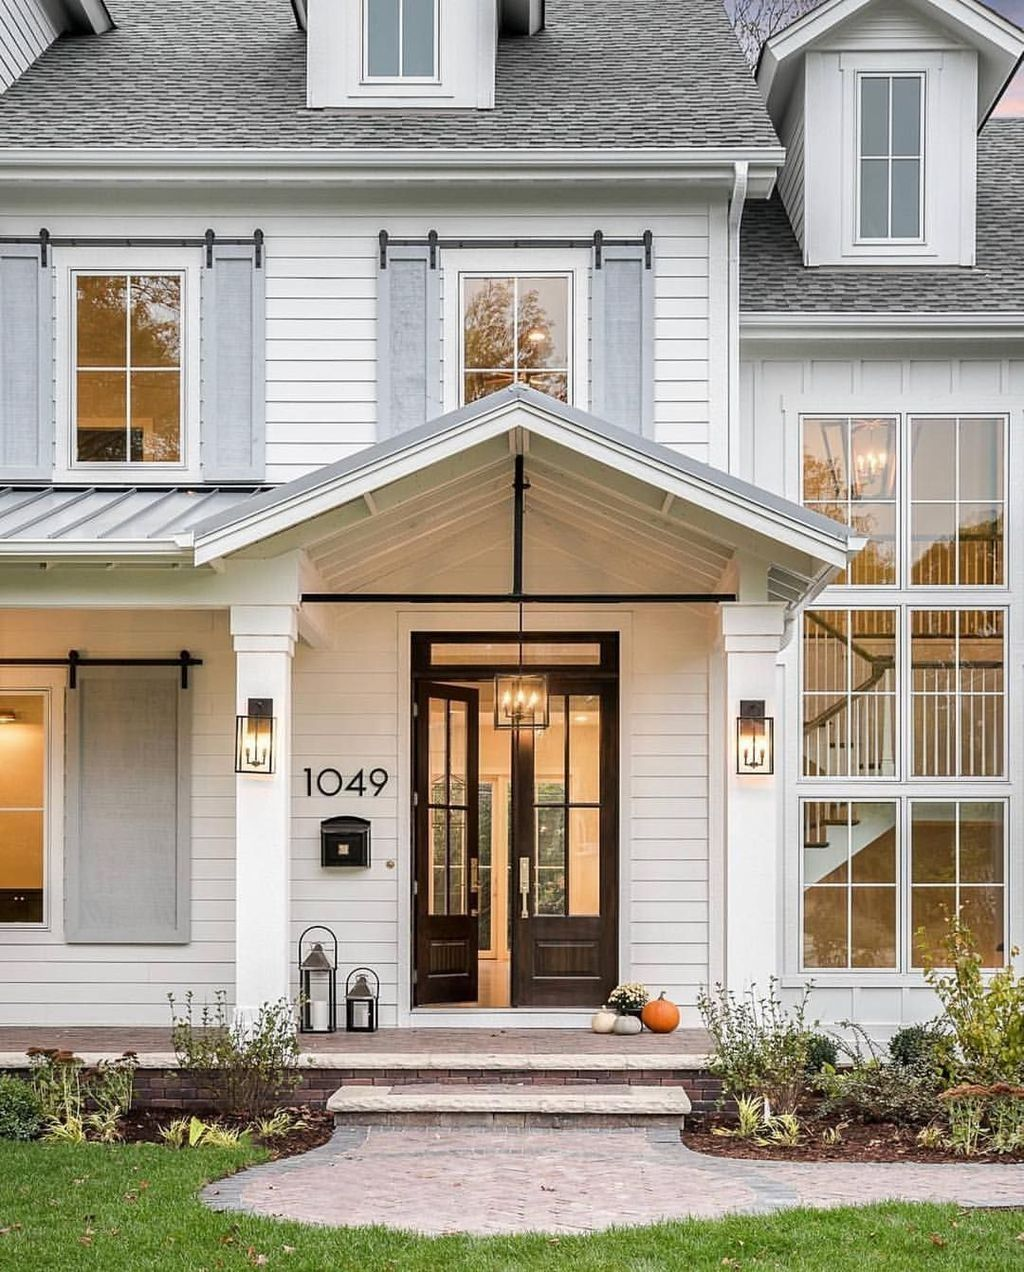 Most stylish farmhouse front door design ideas 26 - Round Decor on front yard landscaping, dance design ideas, front lawn design ideas, bush house front ideas, theatre design ideas, front exterior home designs, foyer design ideas, education design ideas, shell design ideas, stage design ideas, kitchen design ideas, front of landscaping ideas, tri level home front stoop ideas, crew design ideas, front house elevation design, long front porch landscaping ideas, front porch design ideas, condo entrance design ideas, makeup design ideas, garden design ideas,